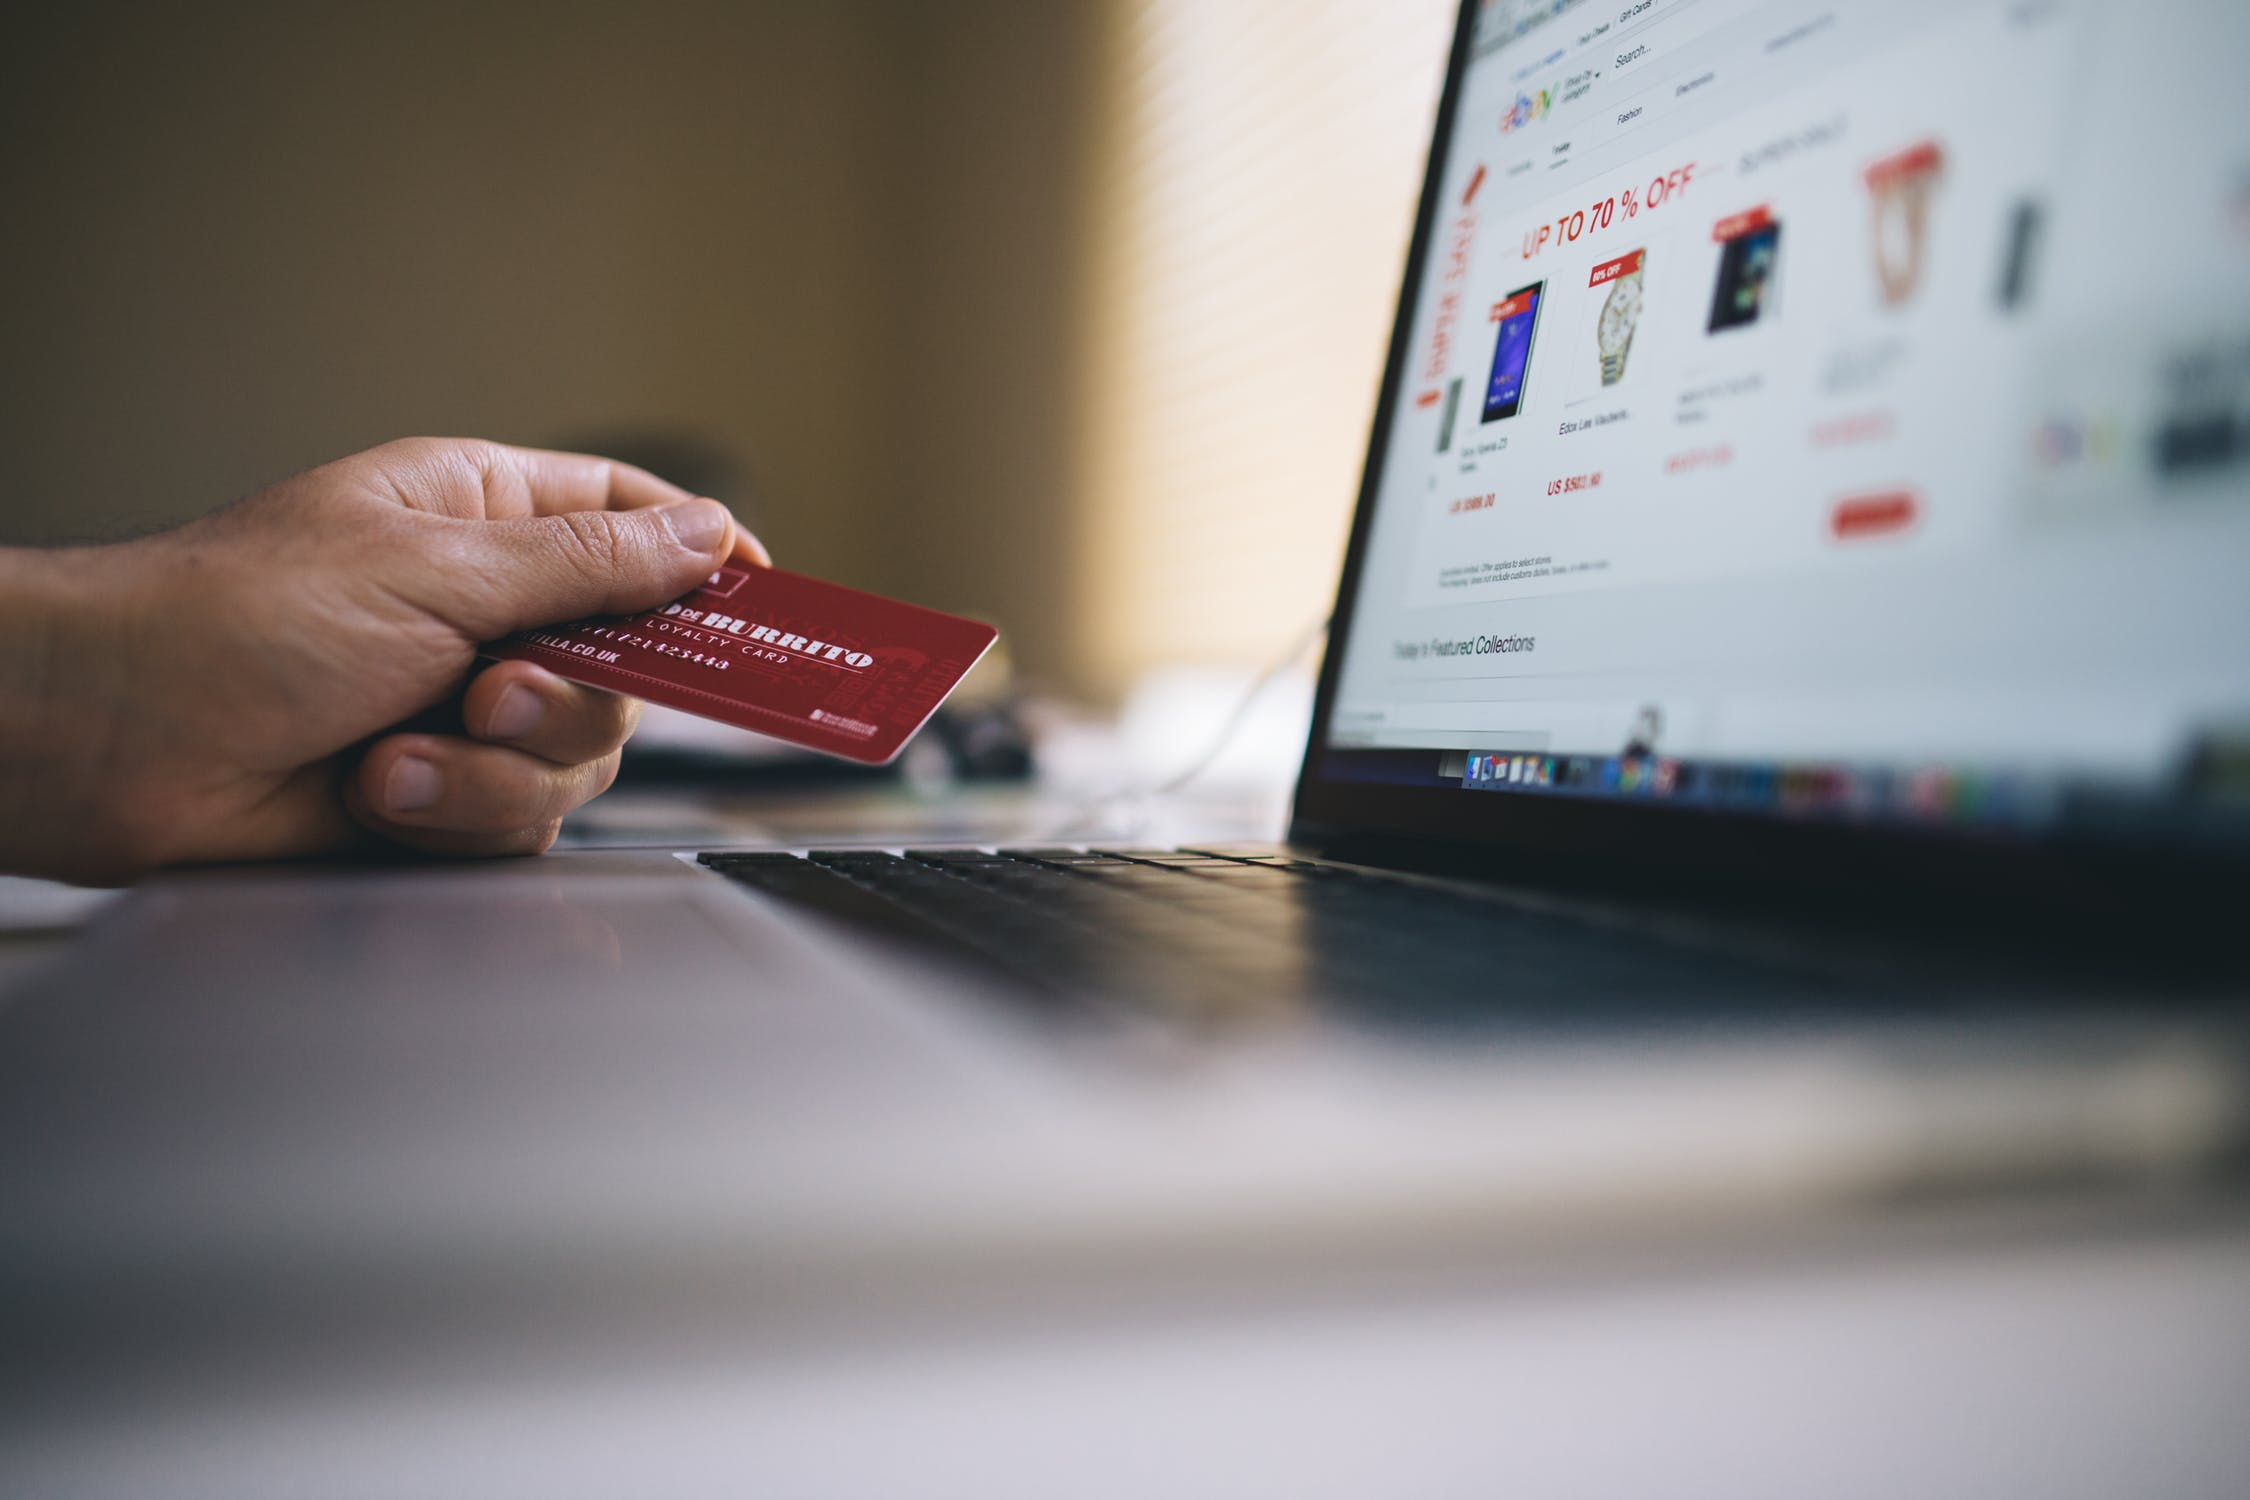 Black Friday: How Uptime Impacts the Bottom Line